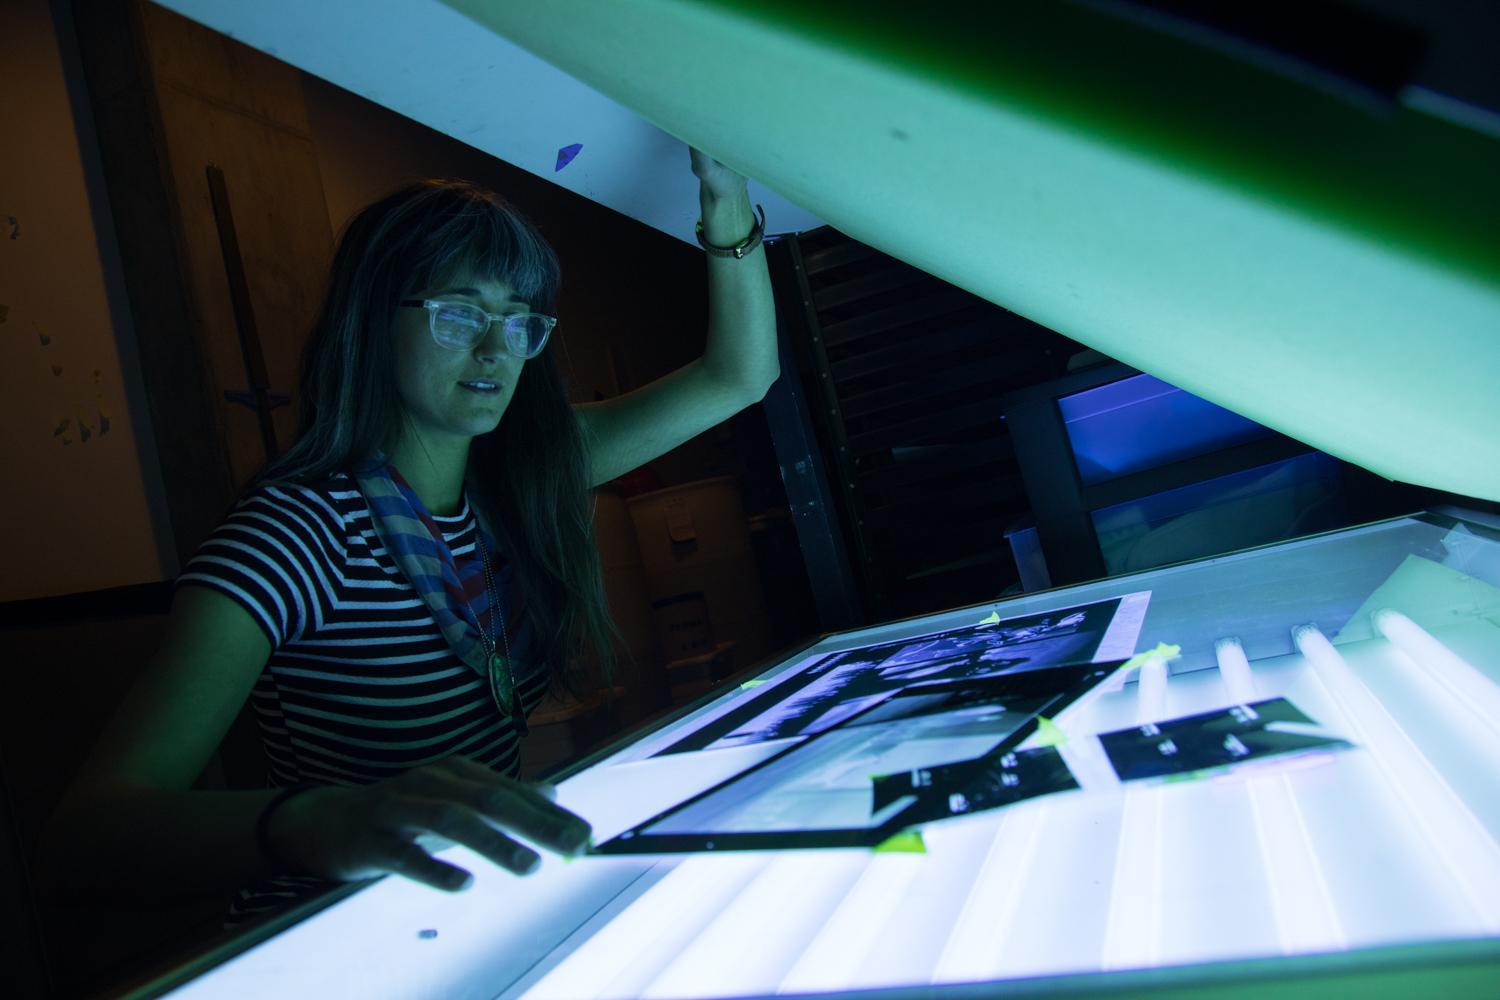 Student reviewing negatives at the light box in the darkroom studio